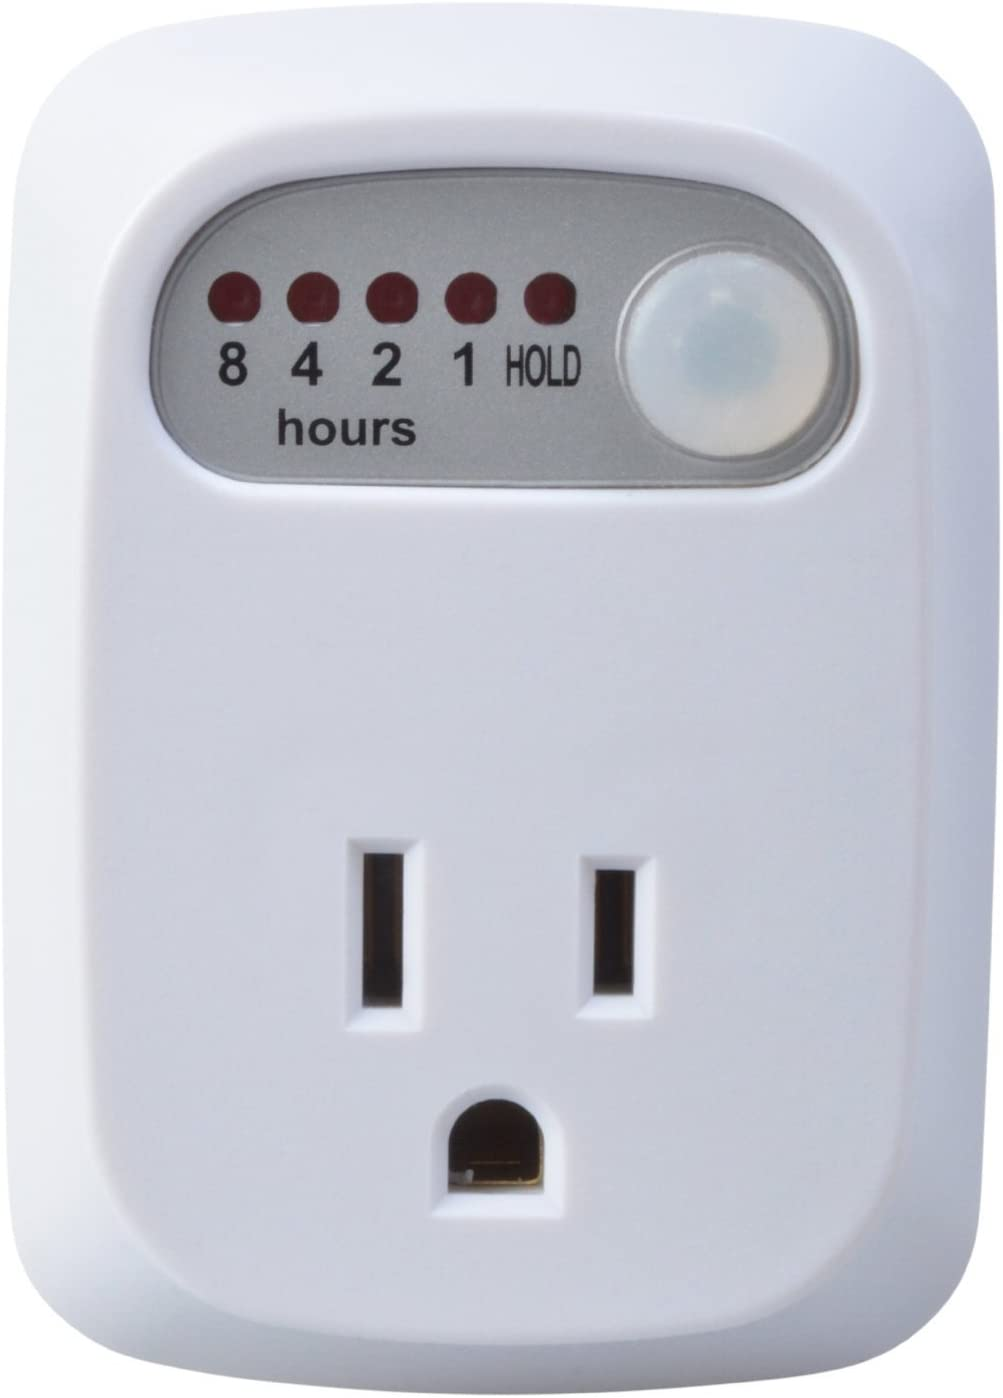 Simple Touch C30004 The Original Auto Shut-Off Safety Outlet, Multi Setting